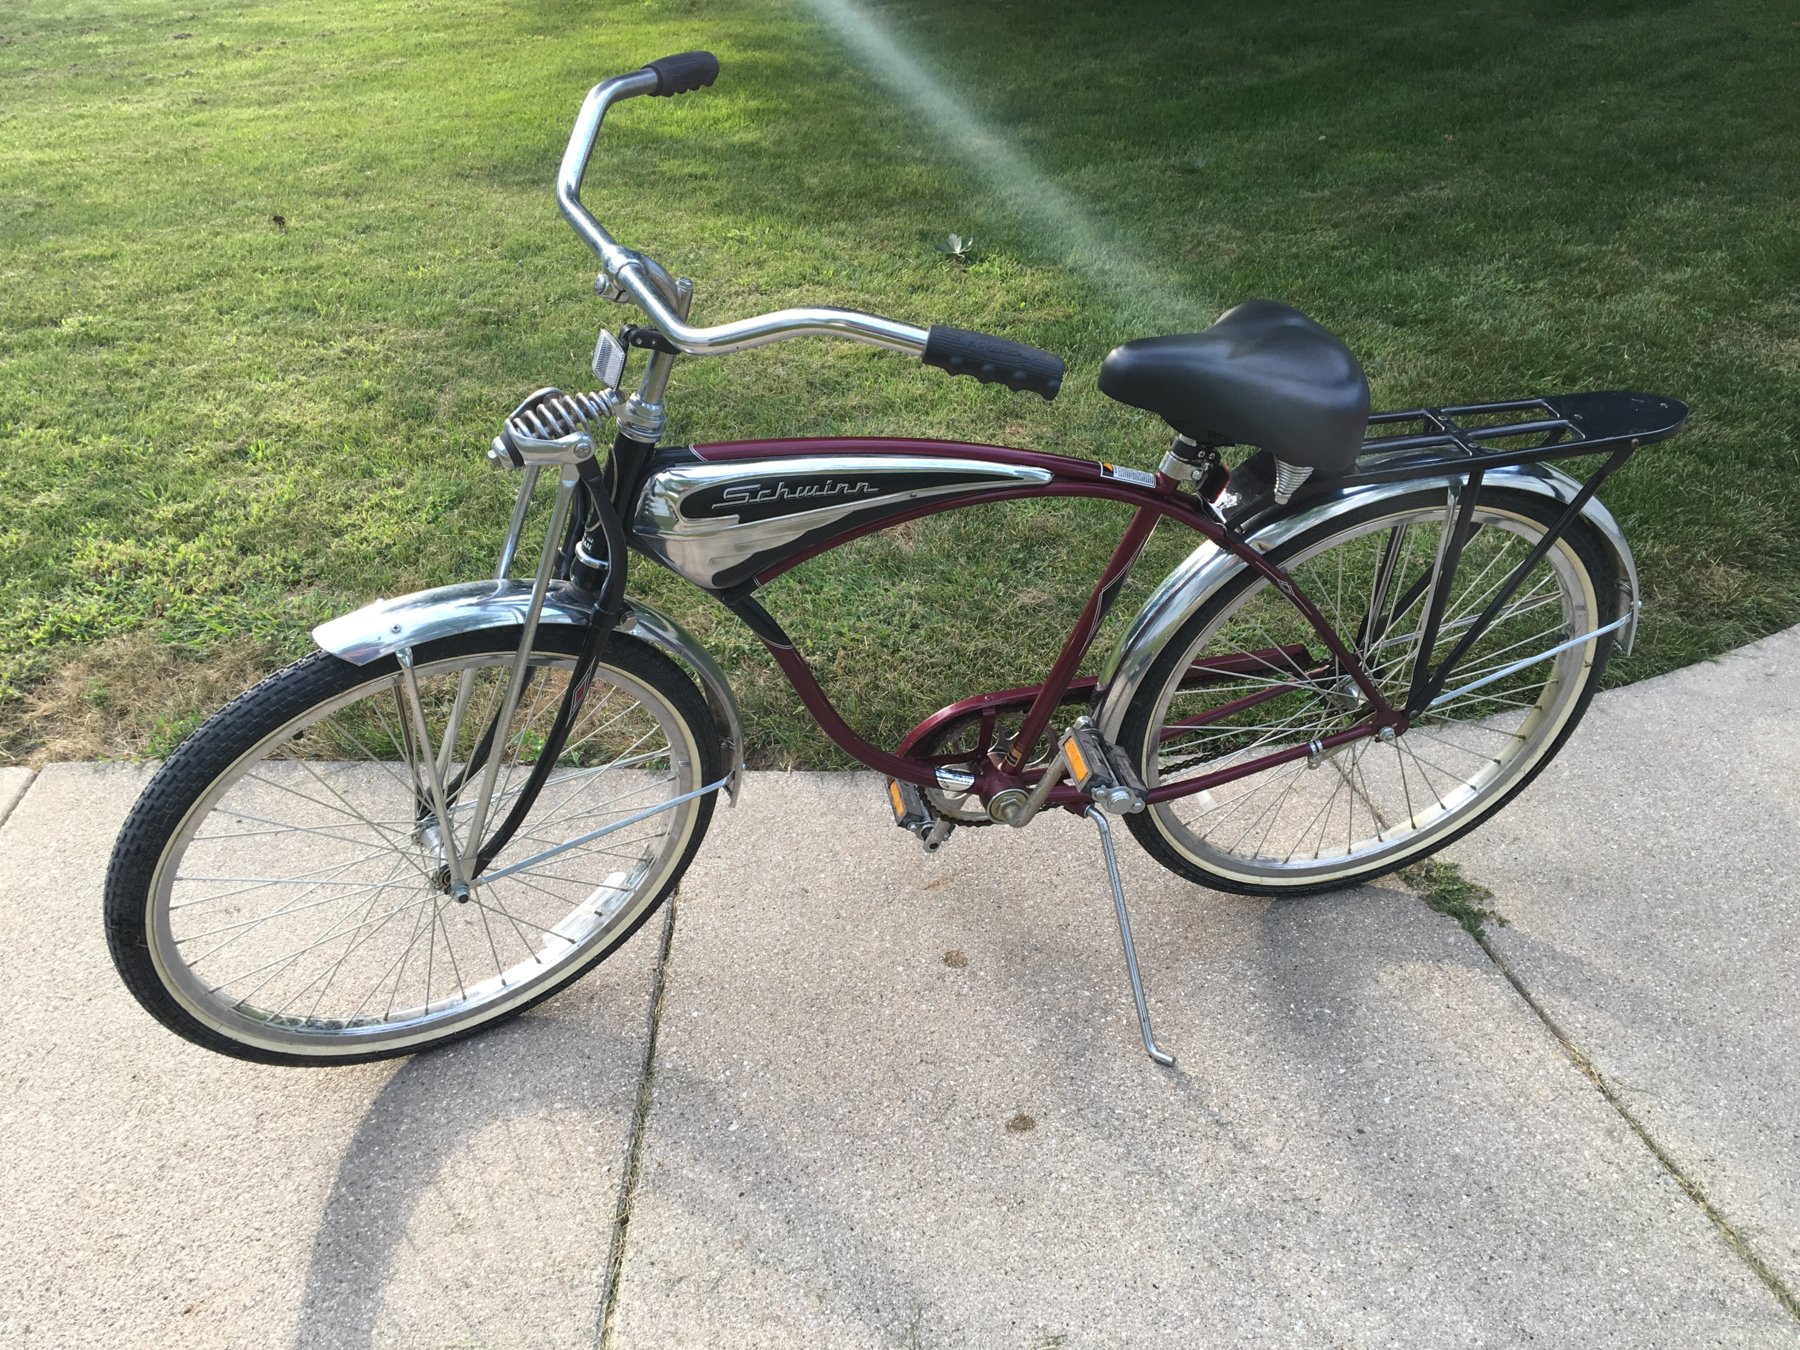 d22adc69b7f Anyone know the value of a 100th anniversary cruiser deluxe? Bike needs  cleaned up but every bit of it is 100% original. Bike was purchased and  ridden less ...